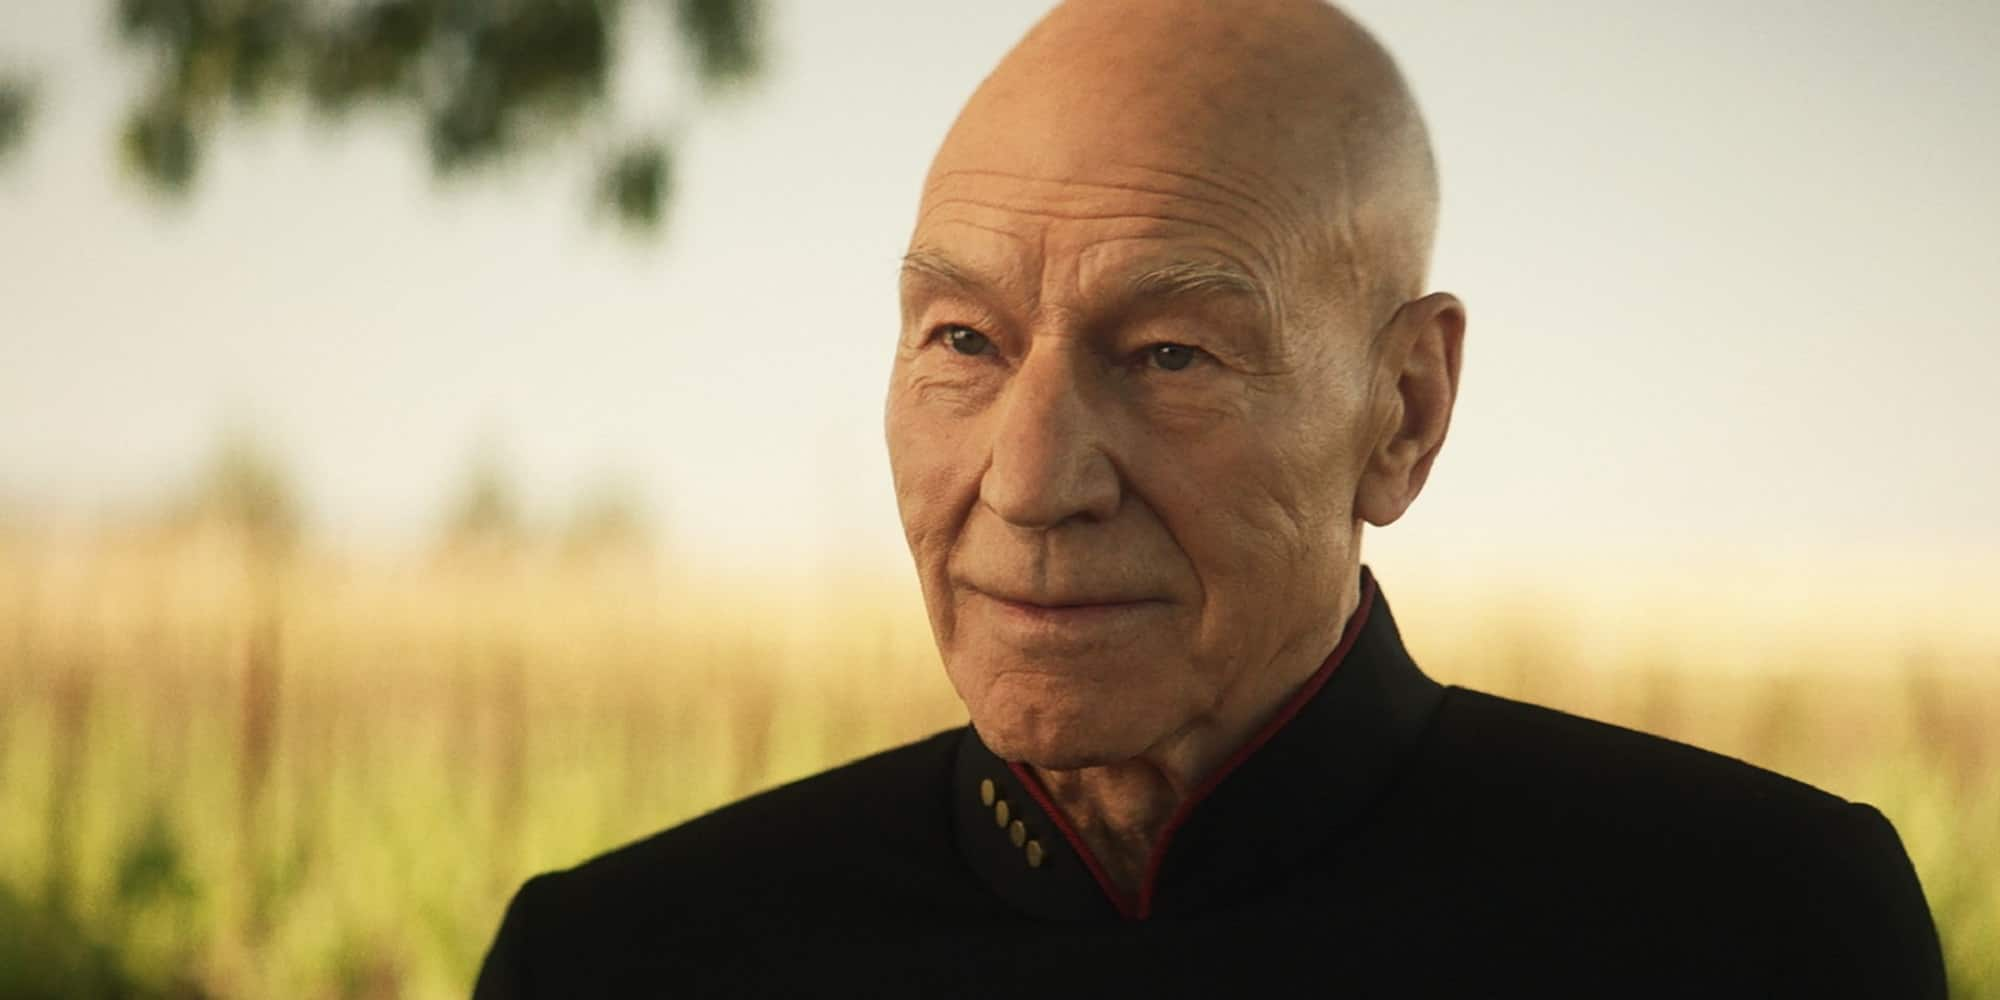 Star Trek Picard Season 1 Finale Featured